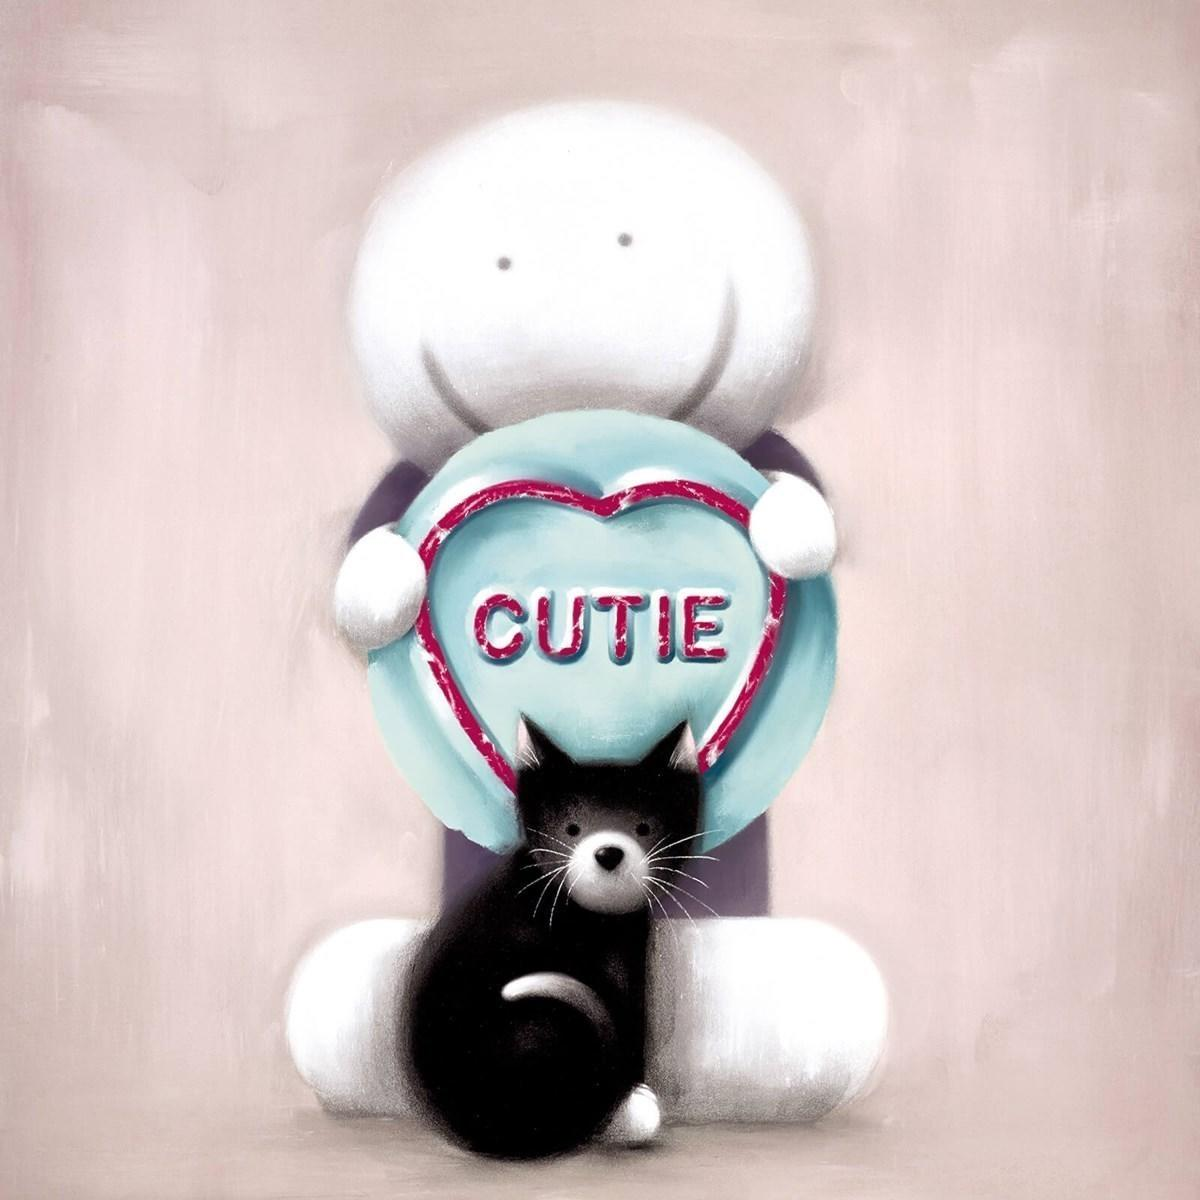 Super Cutie by Doug Hyde - Limited Edition art print ZHYD720